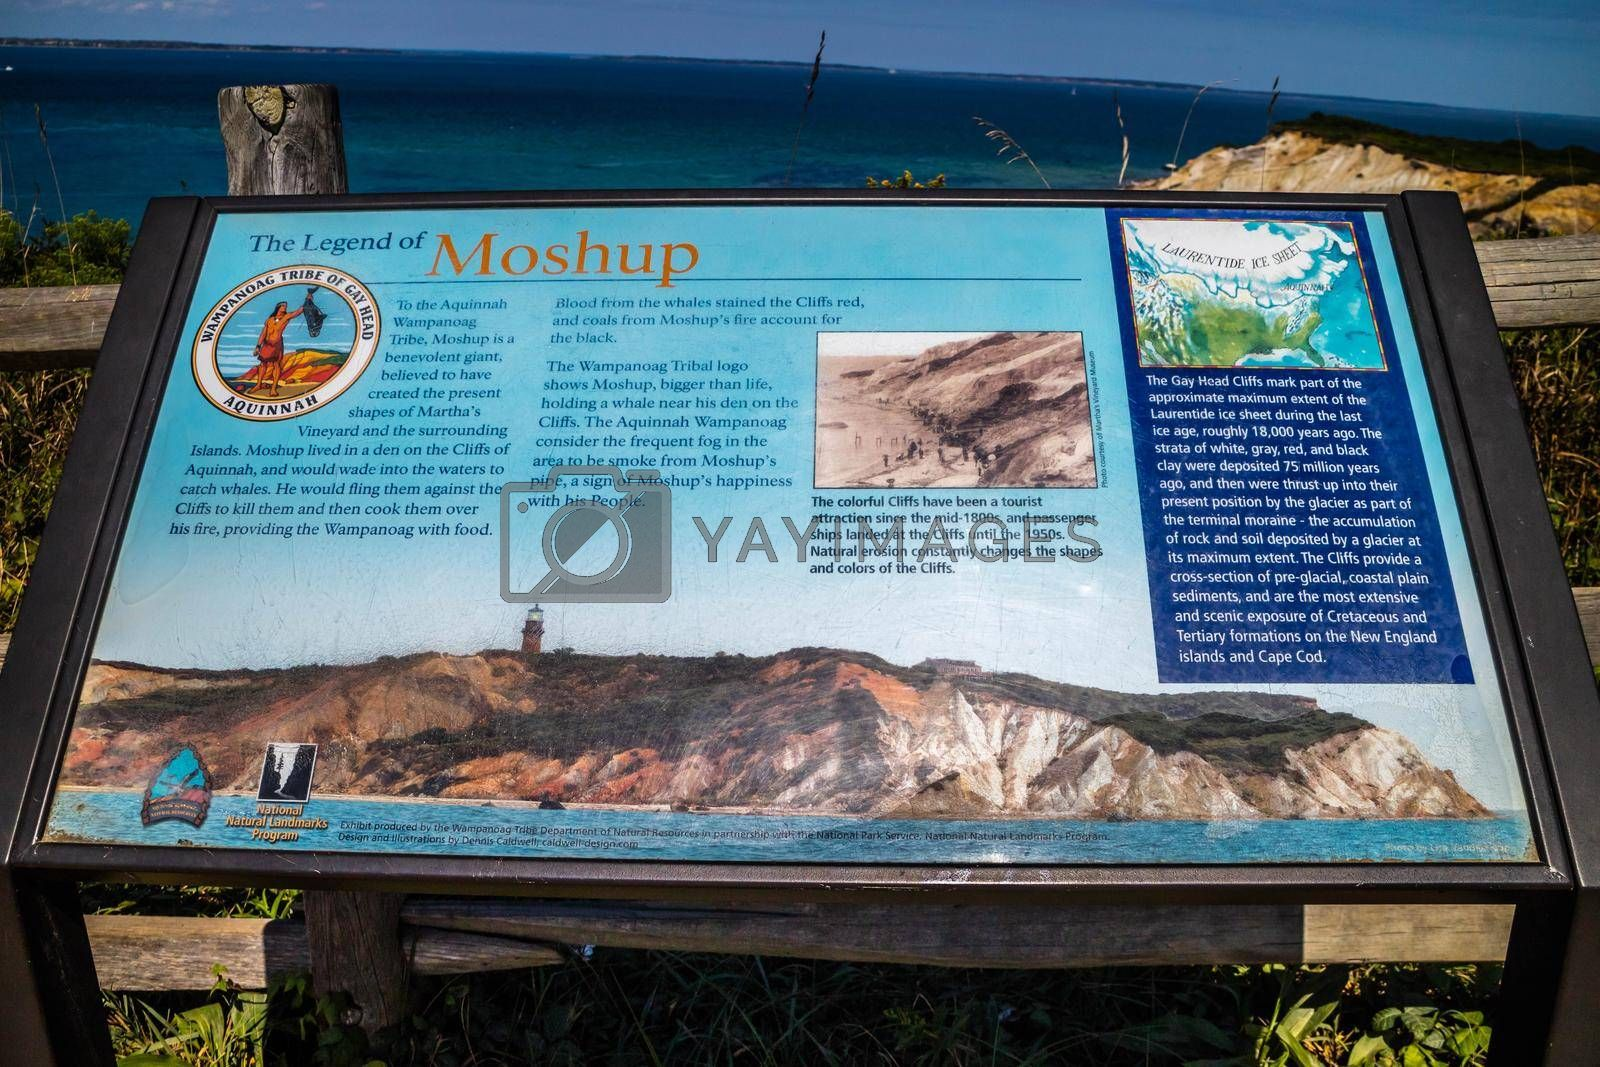 Royalty free image of Cape Cod Marthas Vineyard, MA, USA - Sept 4, 2018: The Legend of Moshop Cliff stone marker by cherialguire